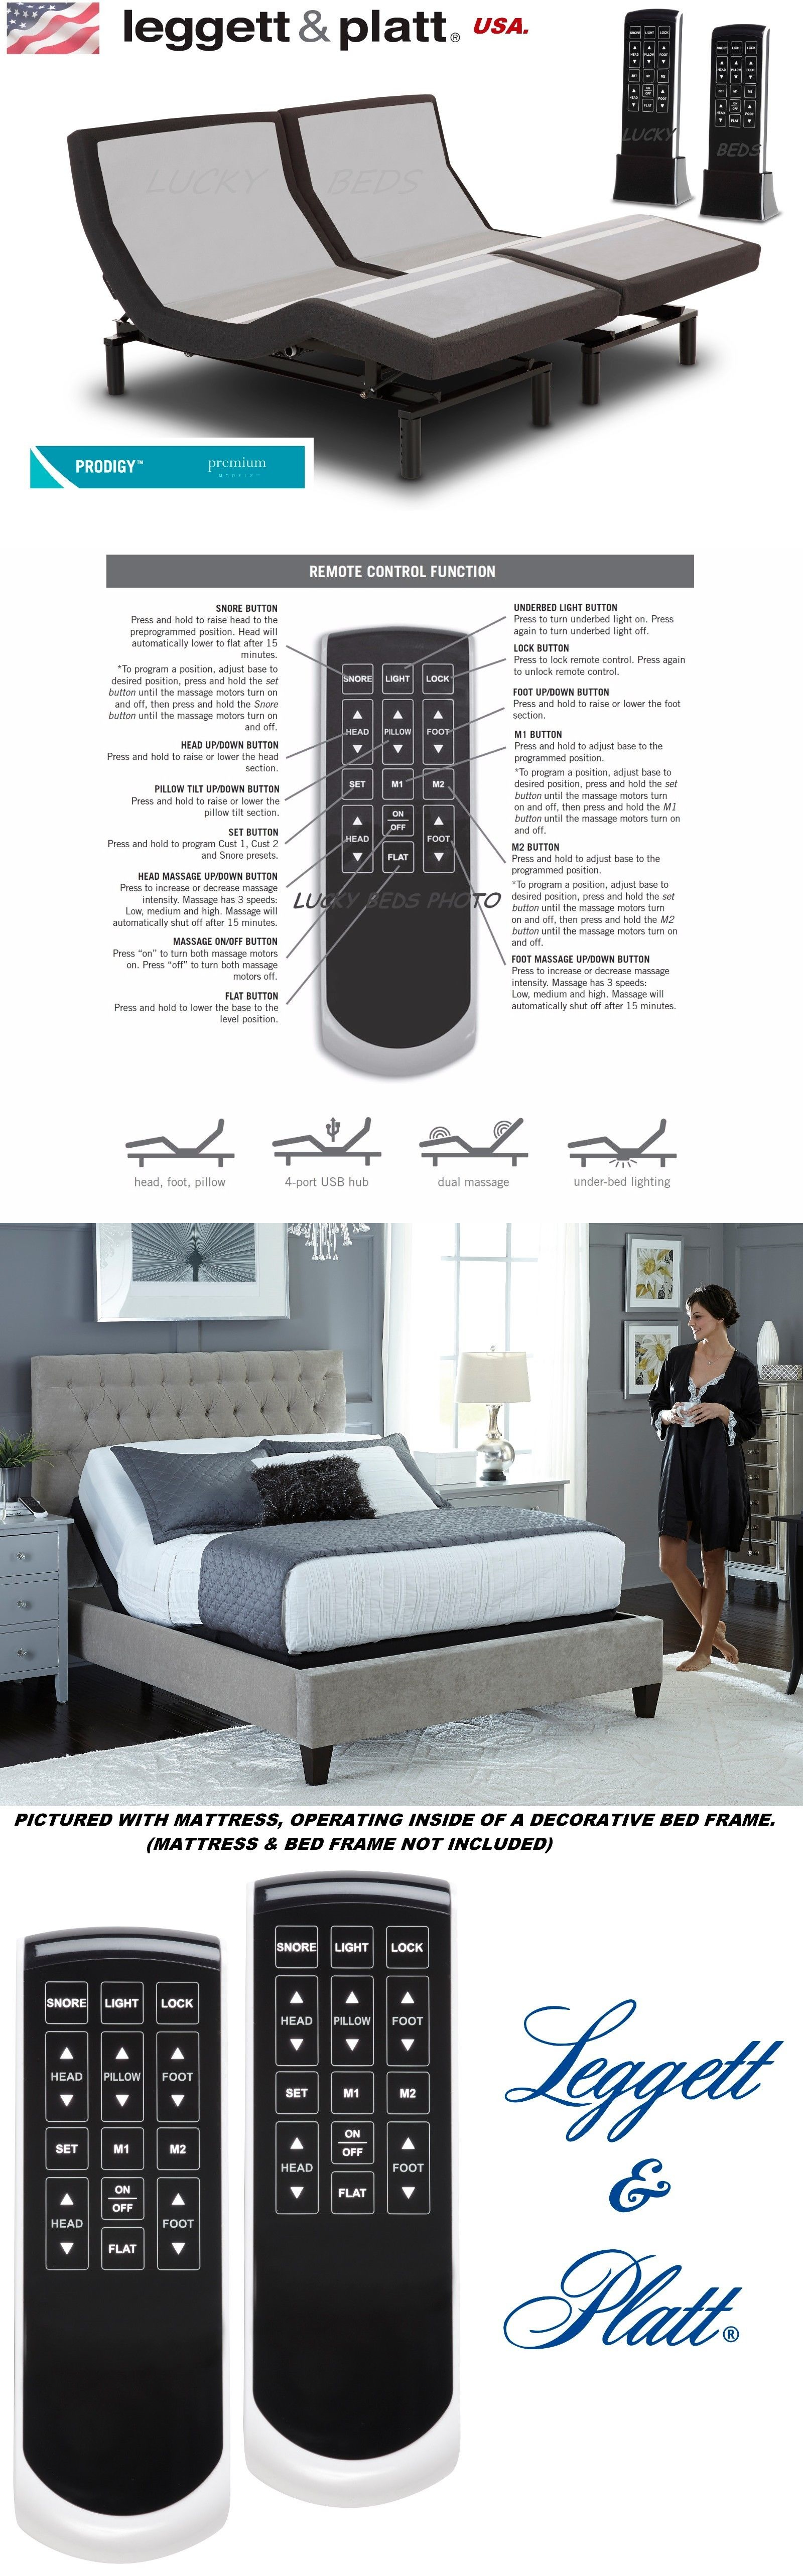 Bed and Waterbed Accessories Prodigy 2 0 Leg t And Platt